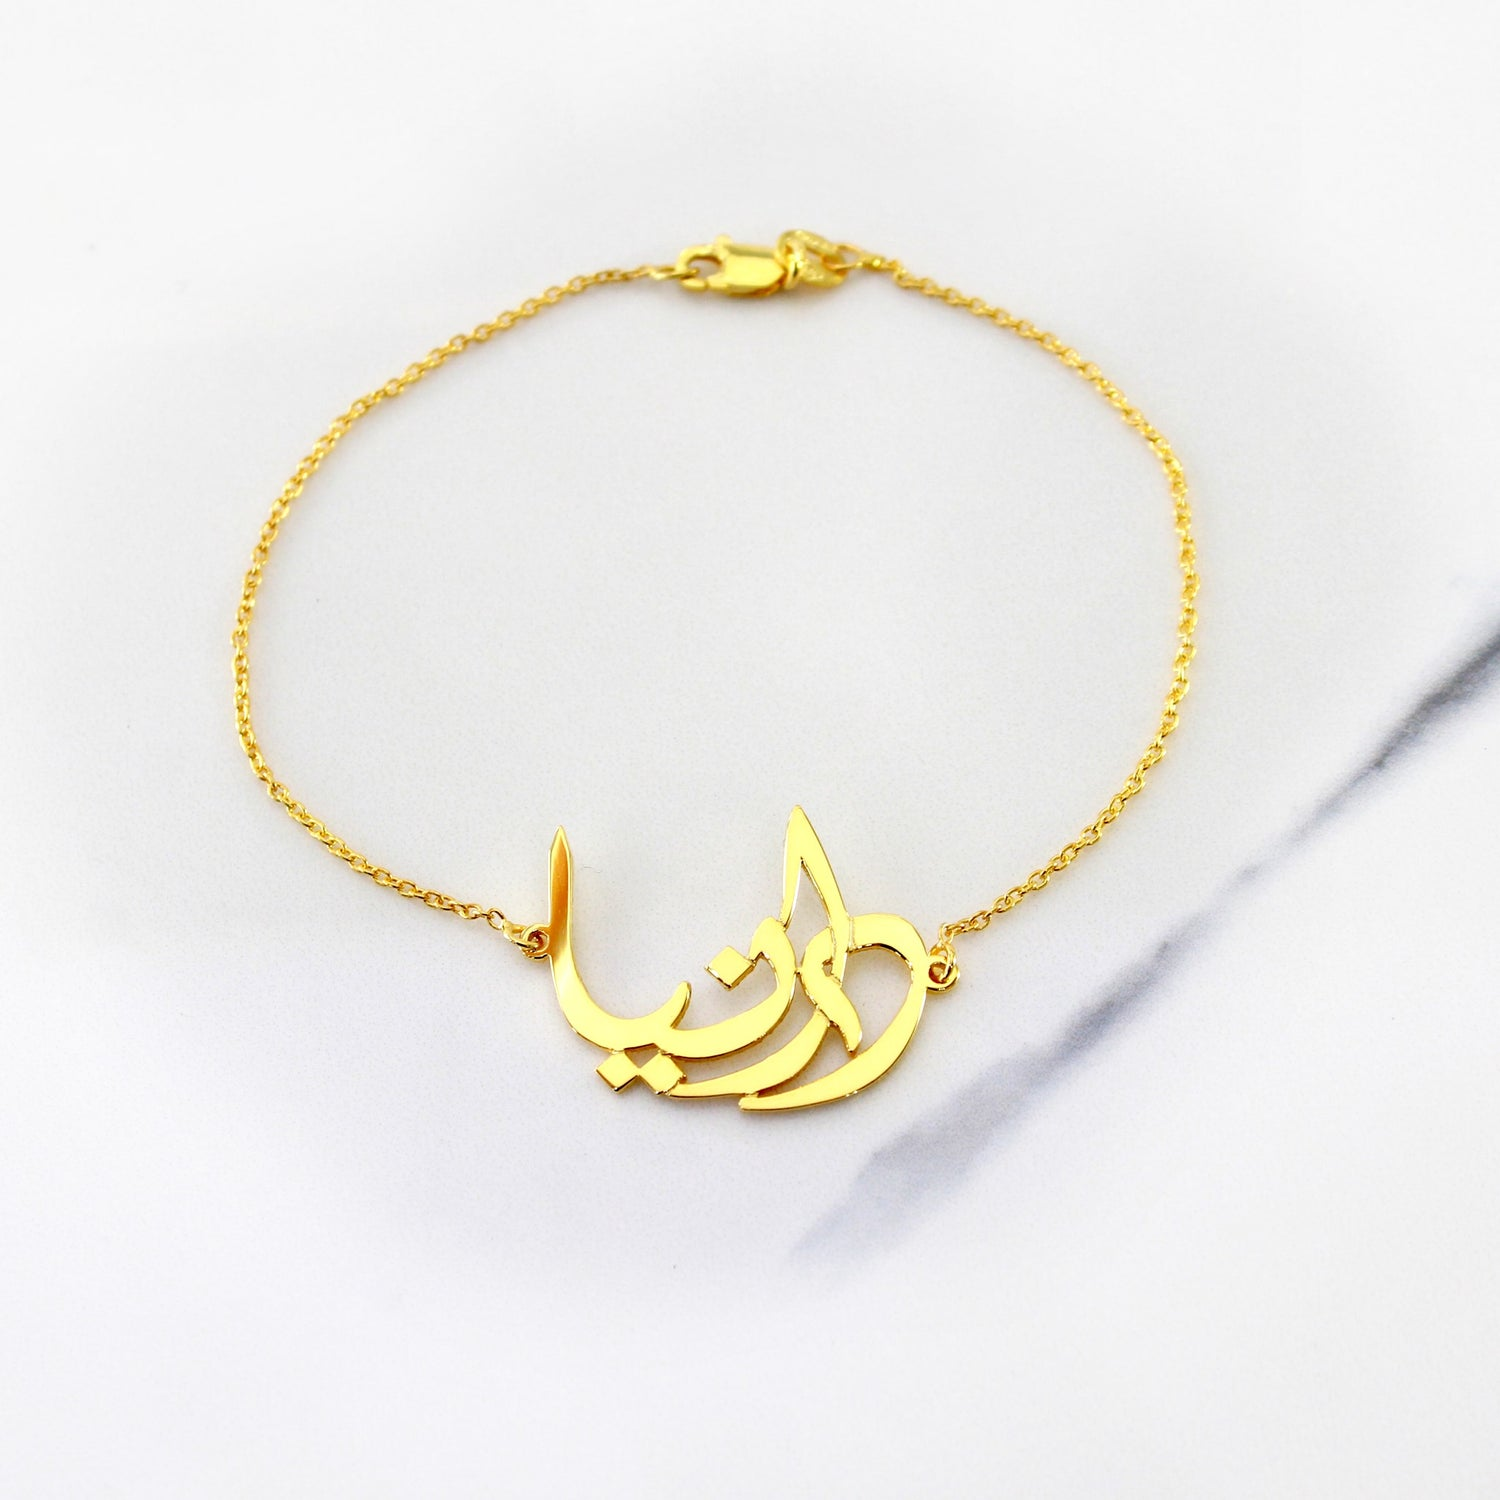 Persian or Arabic Name Bracelet - SCRIPT Calligraphy